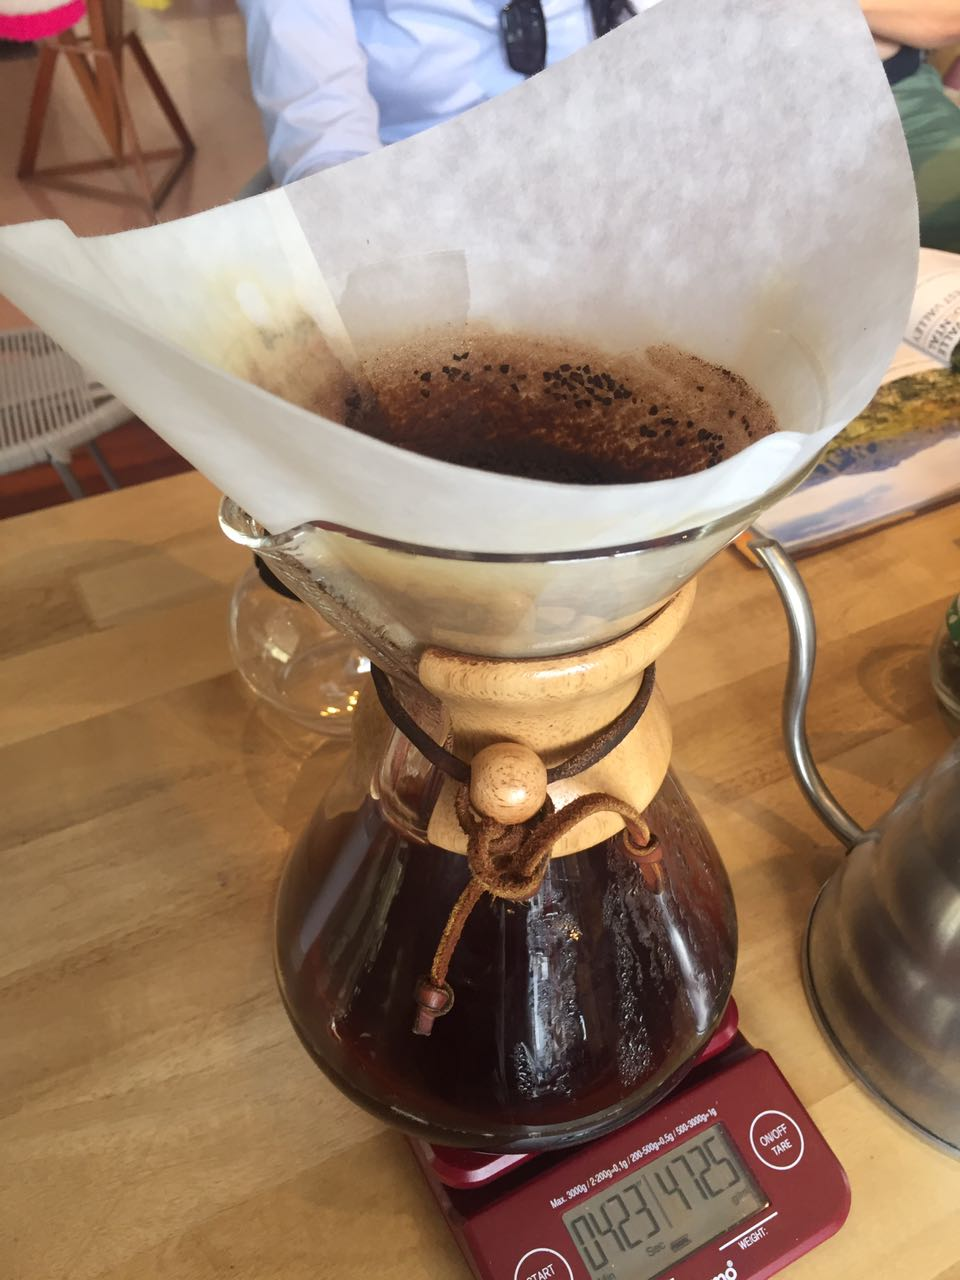 One of the famous methods to prepare coffee at the coffee tasting gastronomic experience